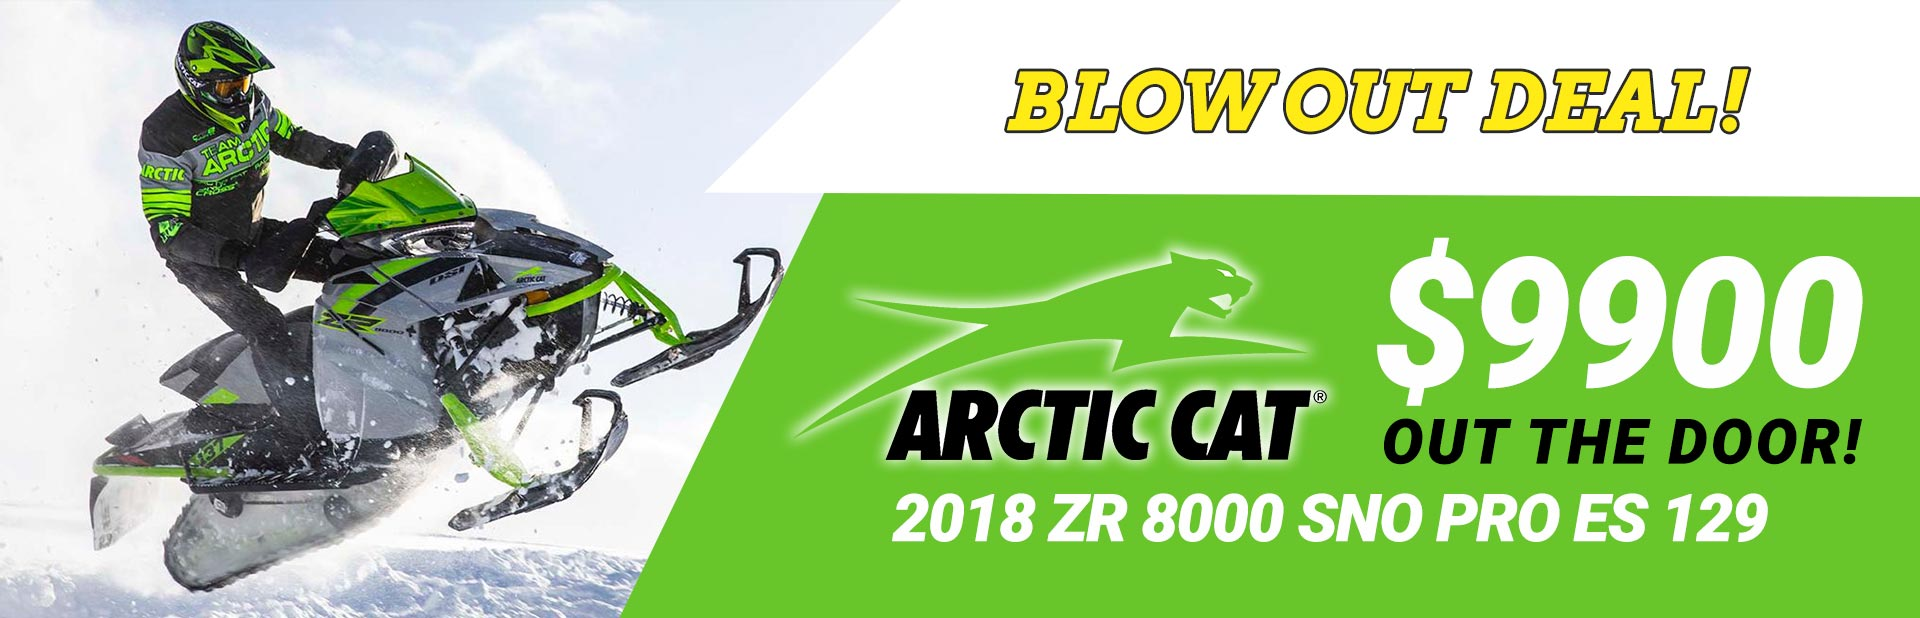 Arctic Cat Blowout Deal